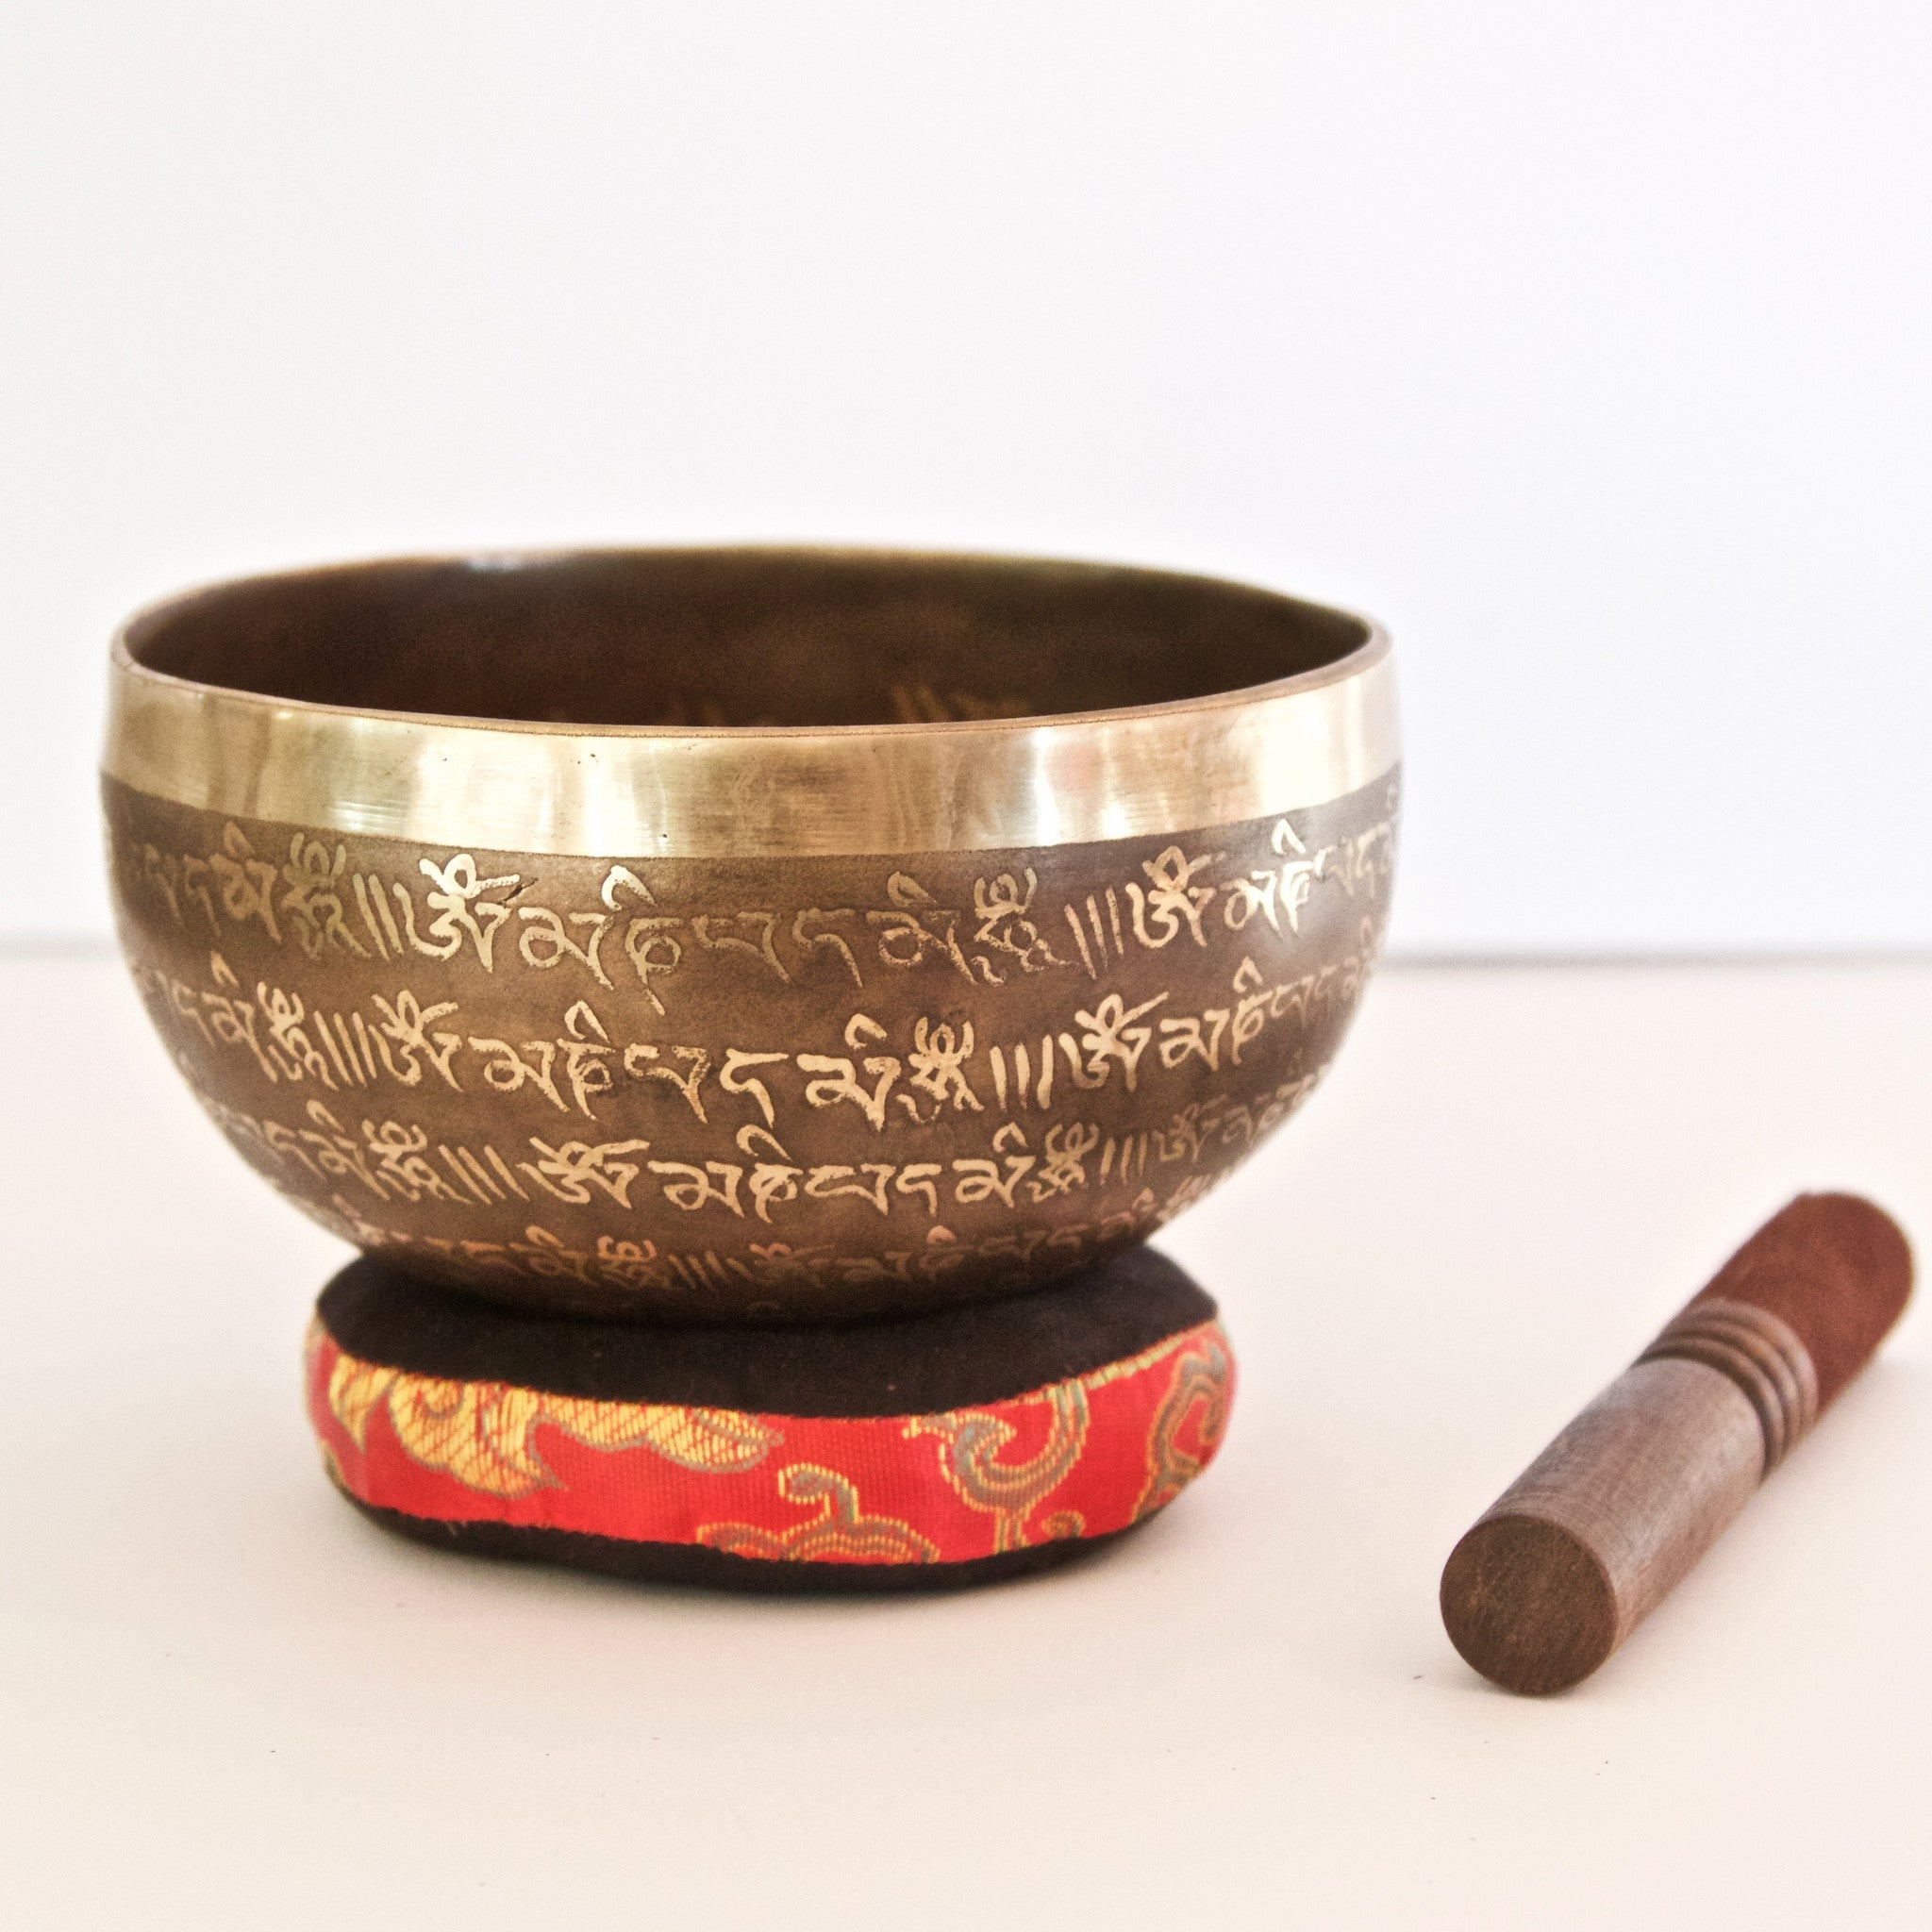 Whirlwind of Compassion Singing Bowl